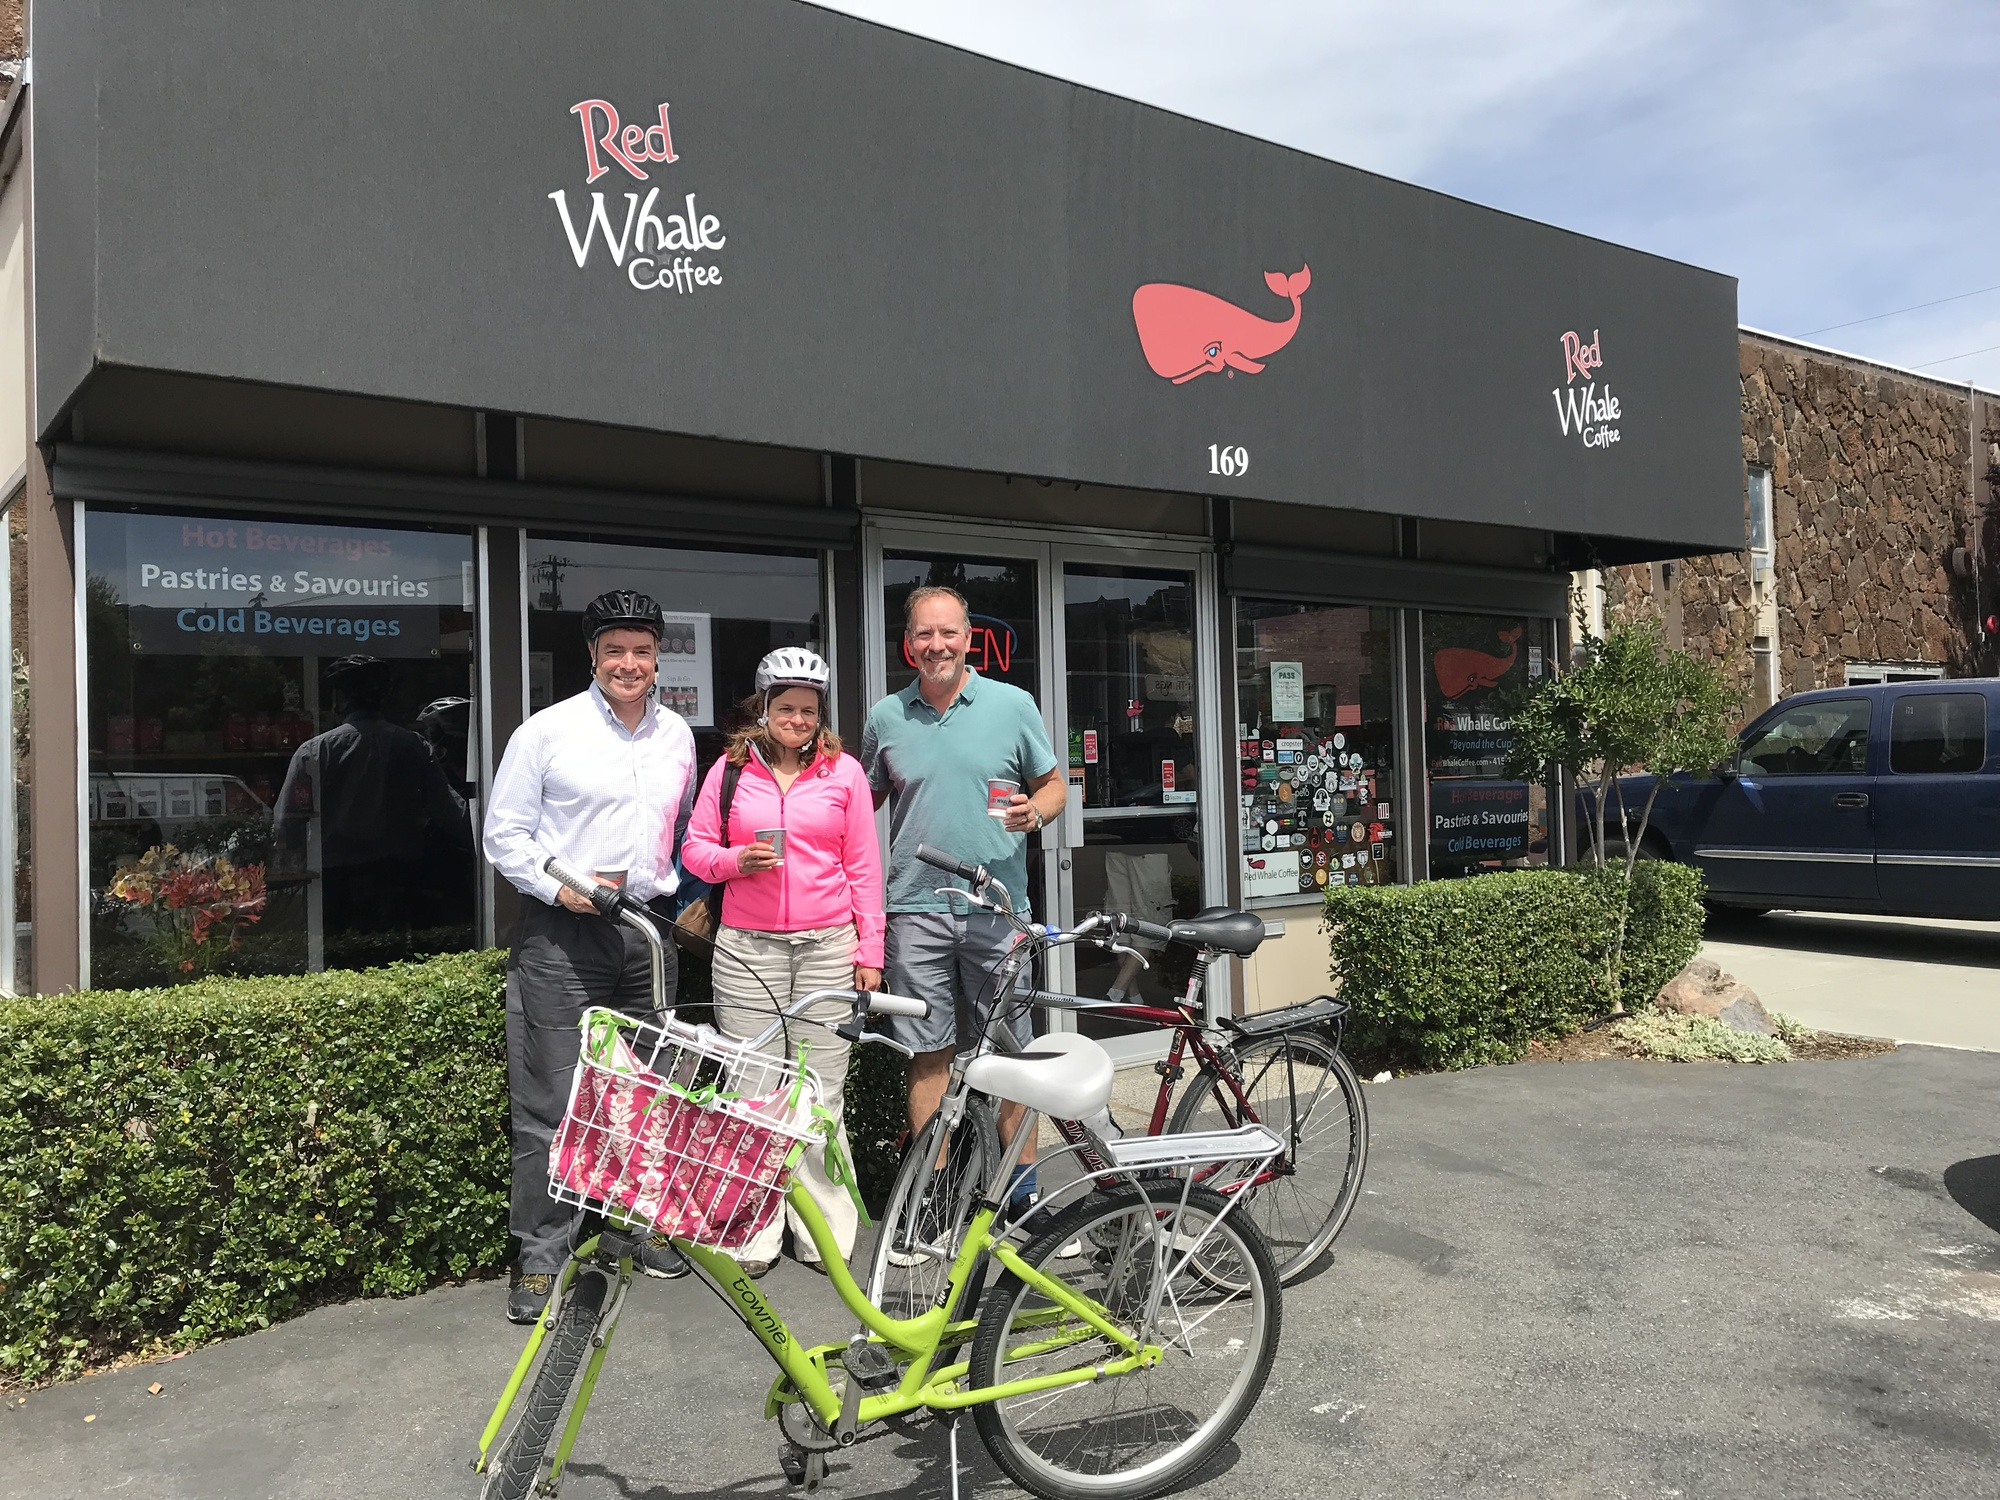 Supervsor Connolly, Connolly's Aide Mary Sackett, and Sean Boyd owner of Red Whale Coffee in front of Red Whale Coffee with bikes